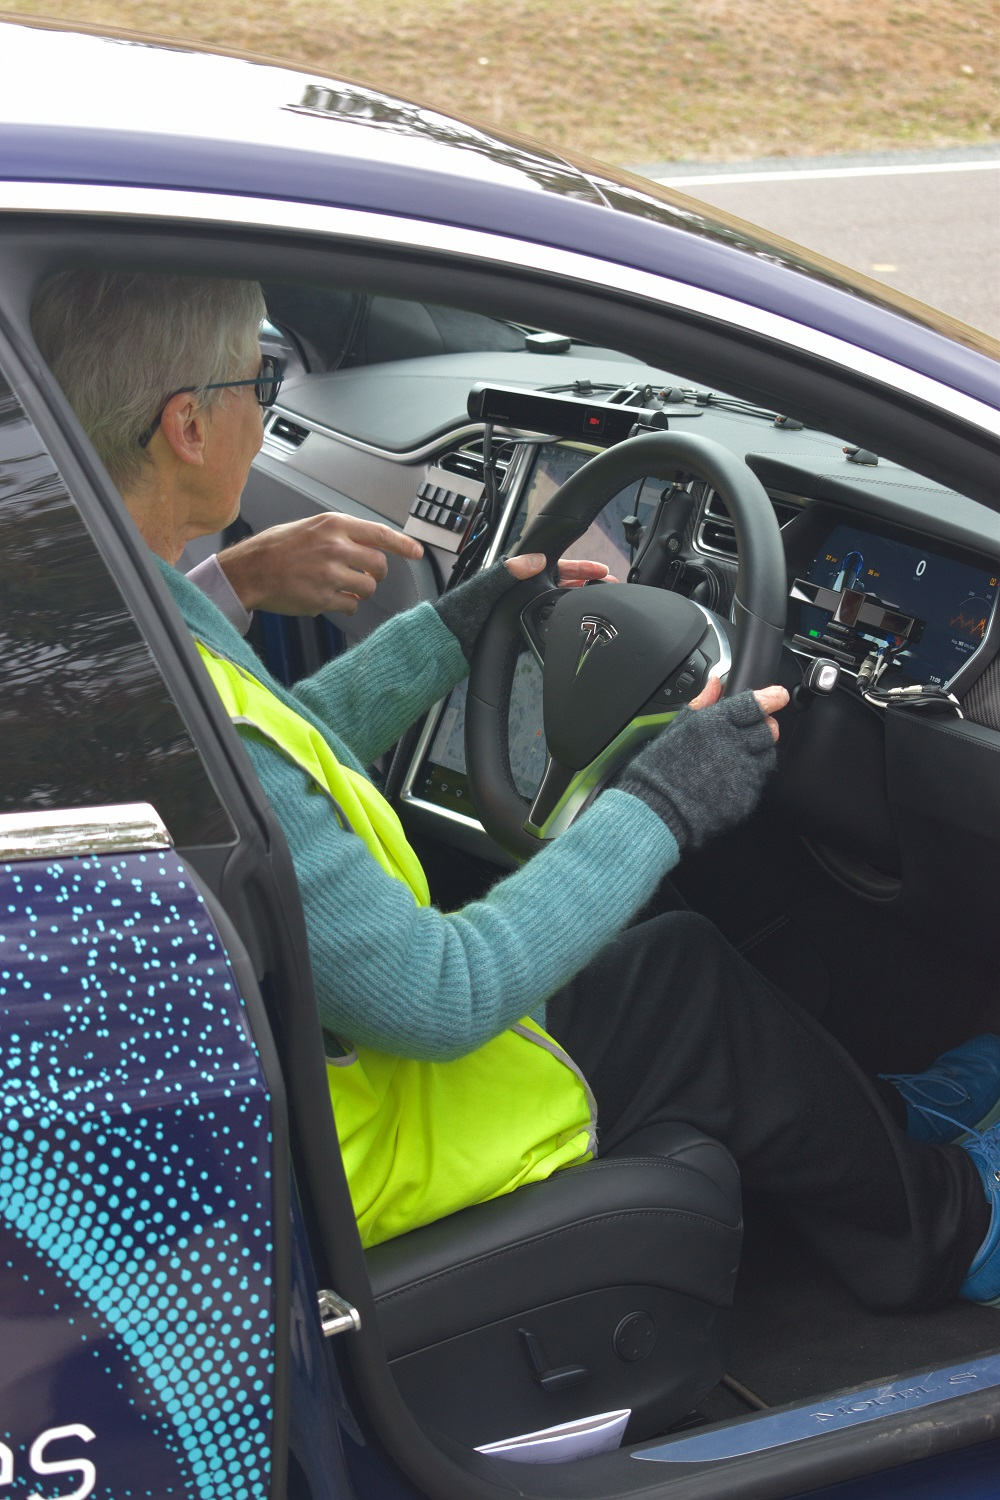 Ms Keir was comfortable with the semi-autonomous driving technology. Photo: Madeleine Wood